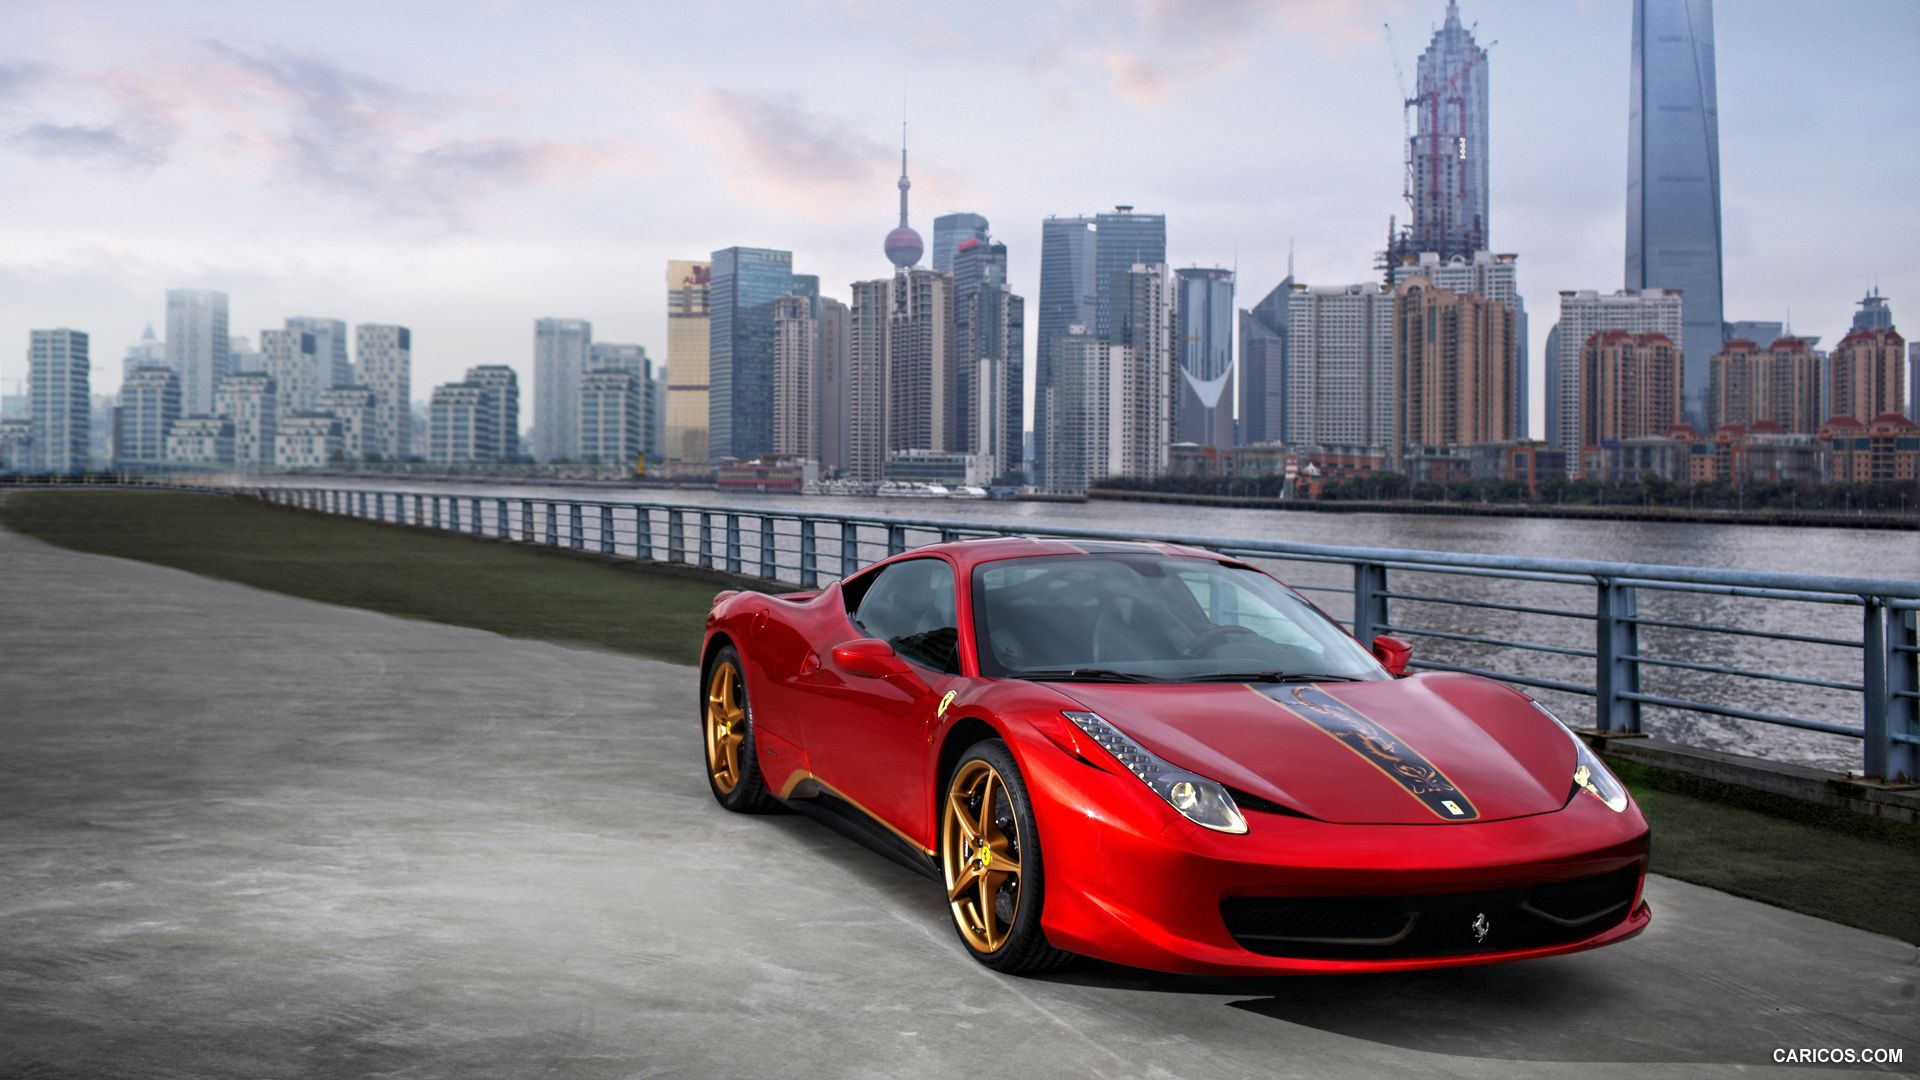 ferrari 458 hd wallpapers 2016 httphdwallpaperswidecoferrari - Ferrari 458 Italia Wallpaper 19201080